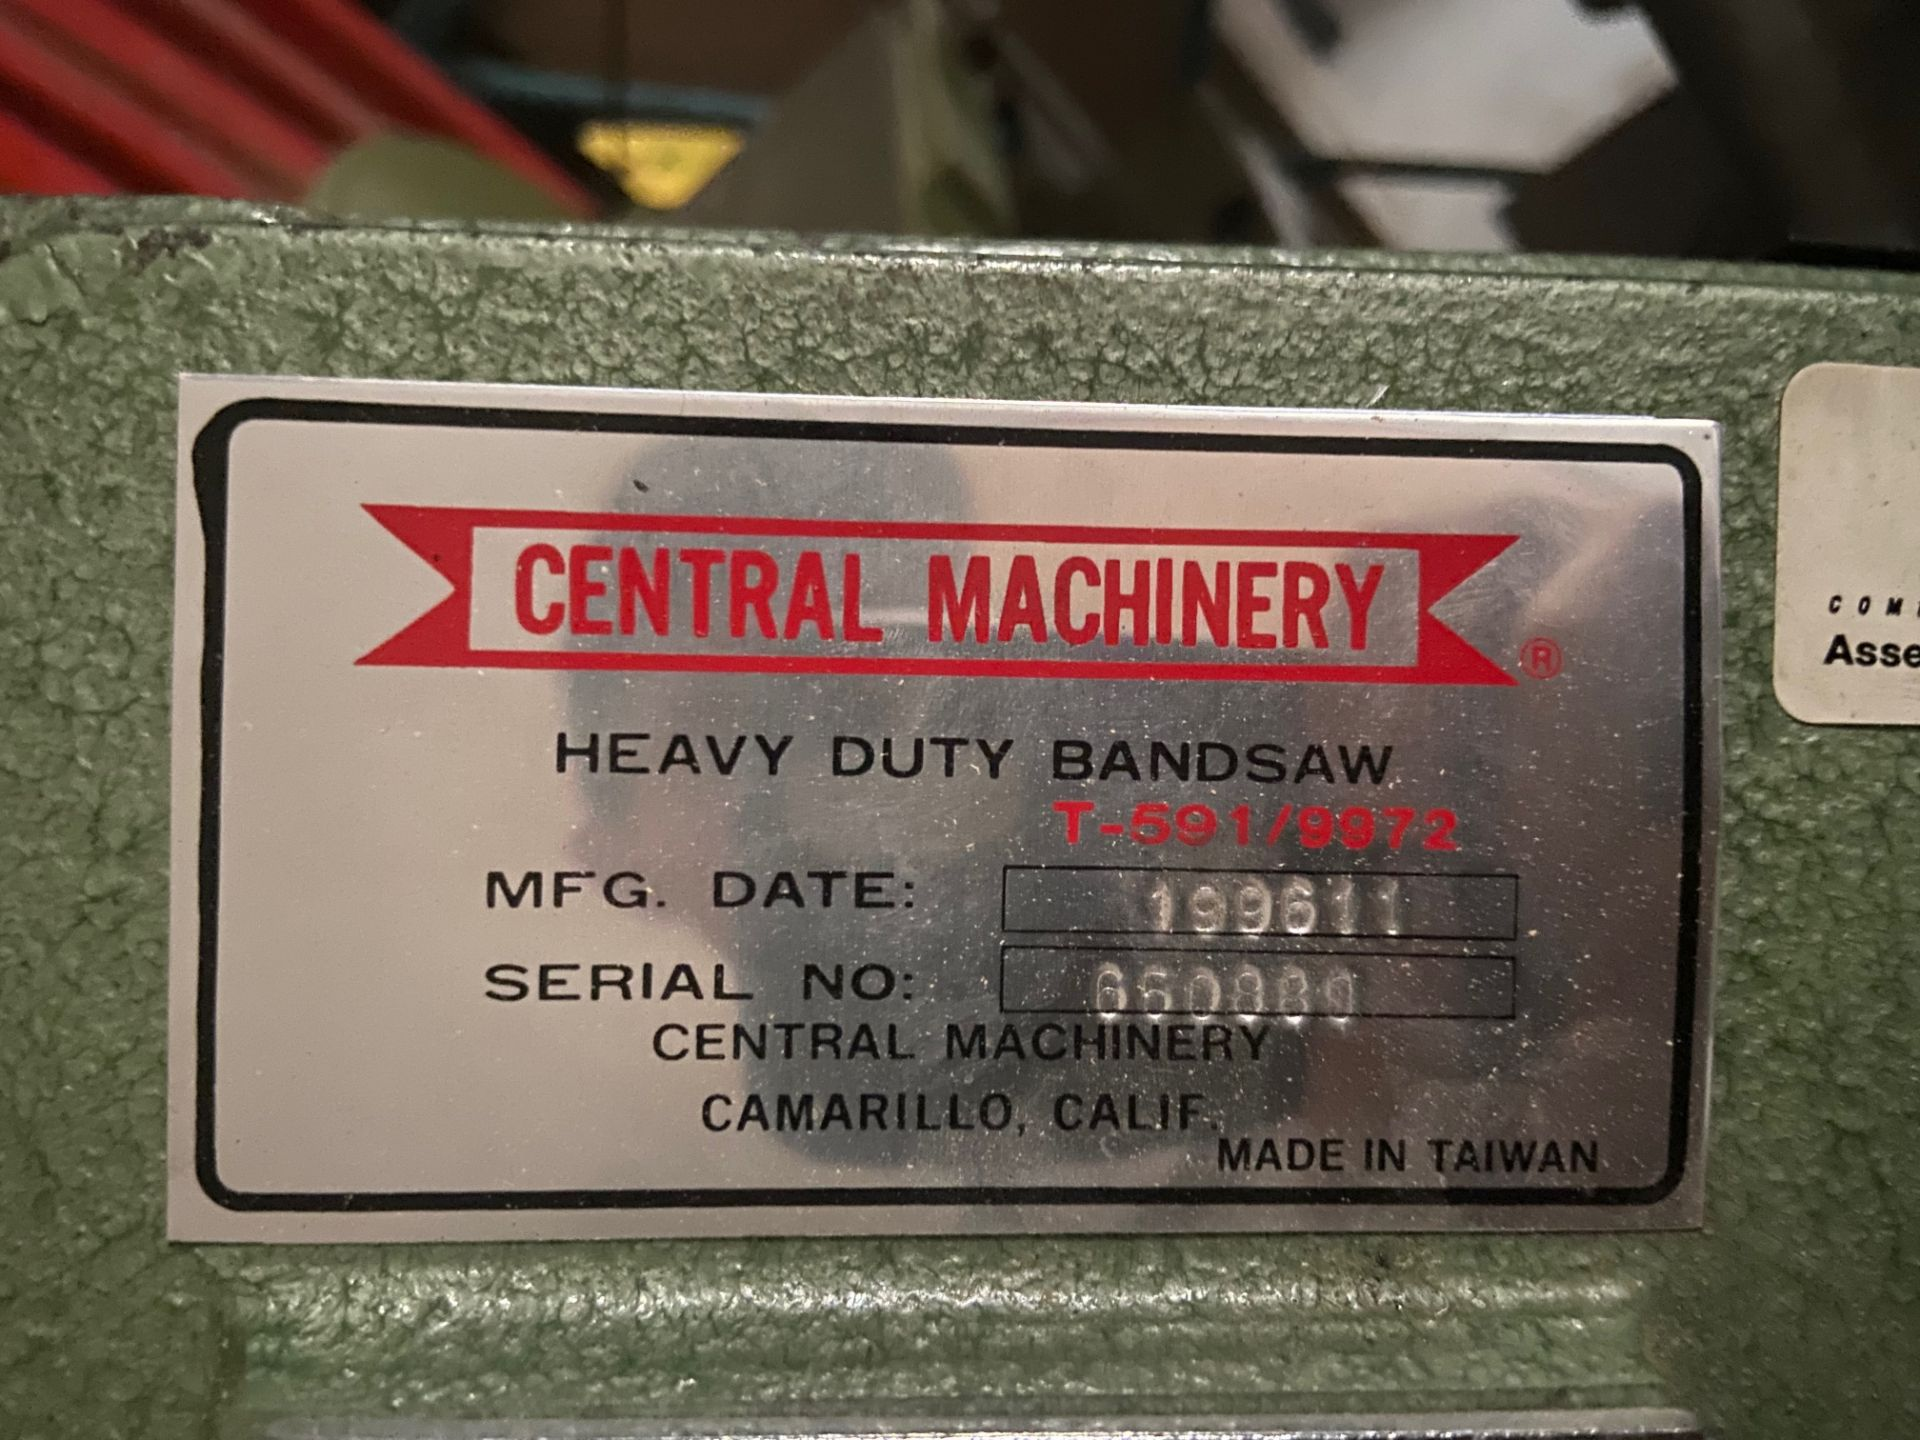 Central Machinery Heavy Duty Bandsaw, Model# T-591/9972, Serial# 660880, Loading/Removal Fee: $25 - Image 2 of 5